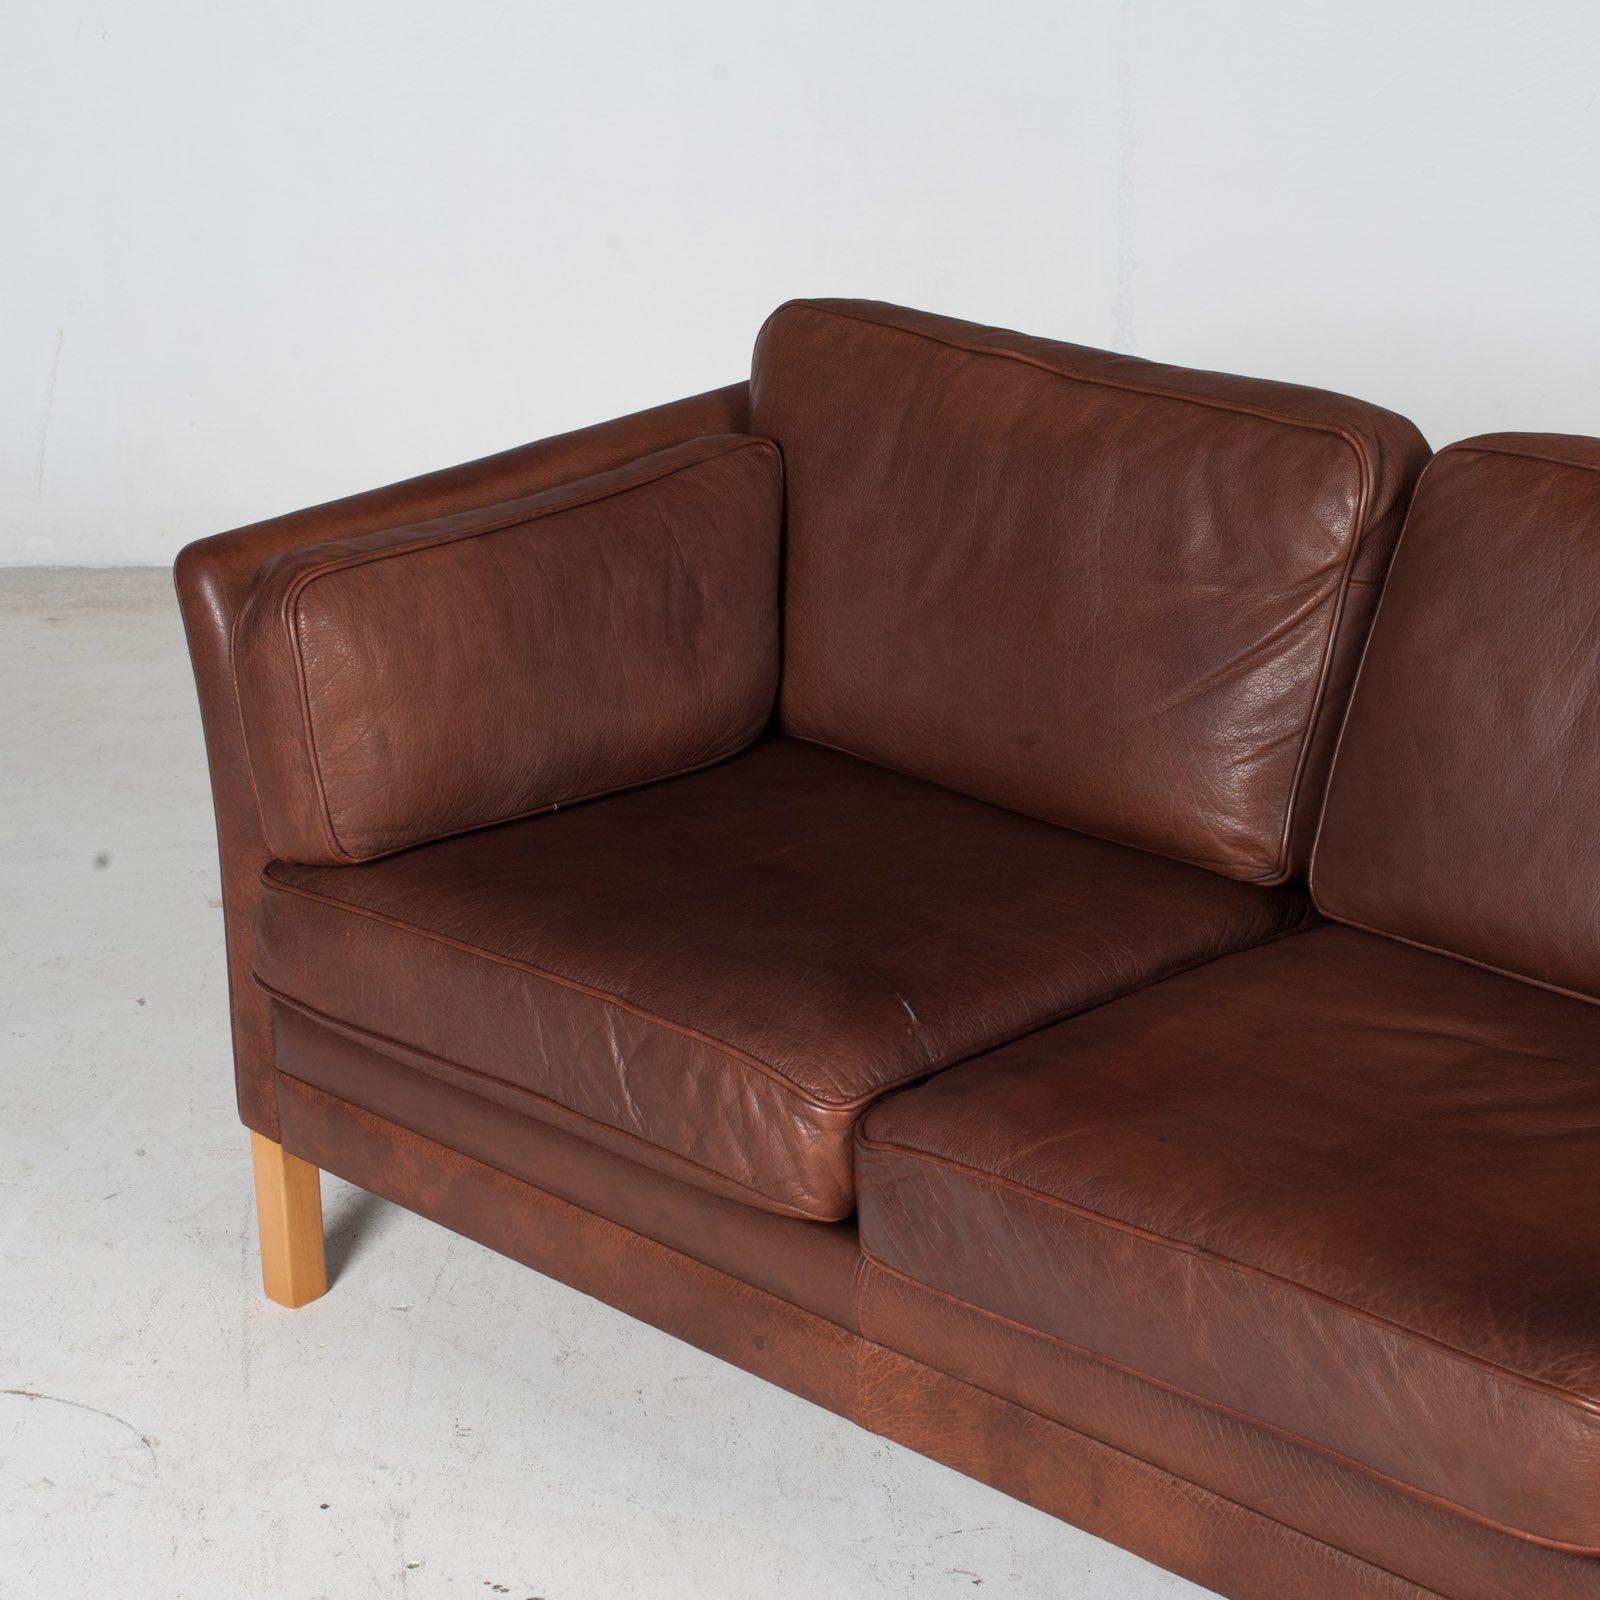 3 Seat Sofa In Brown Leather With Beech Legs, 1960s, Denmark 5